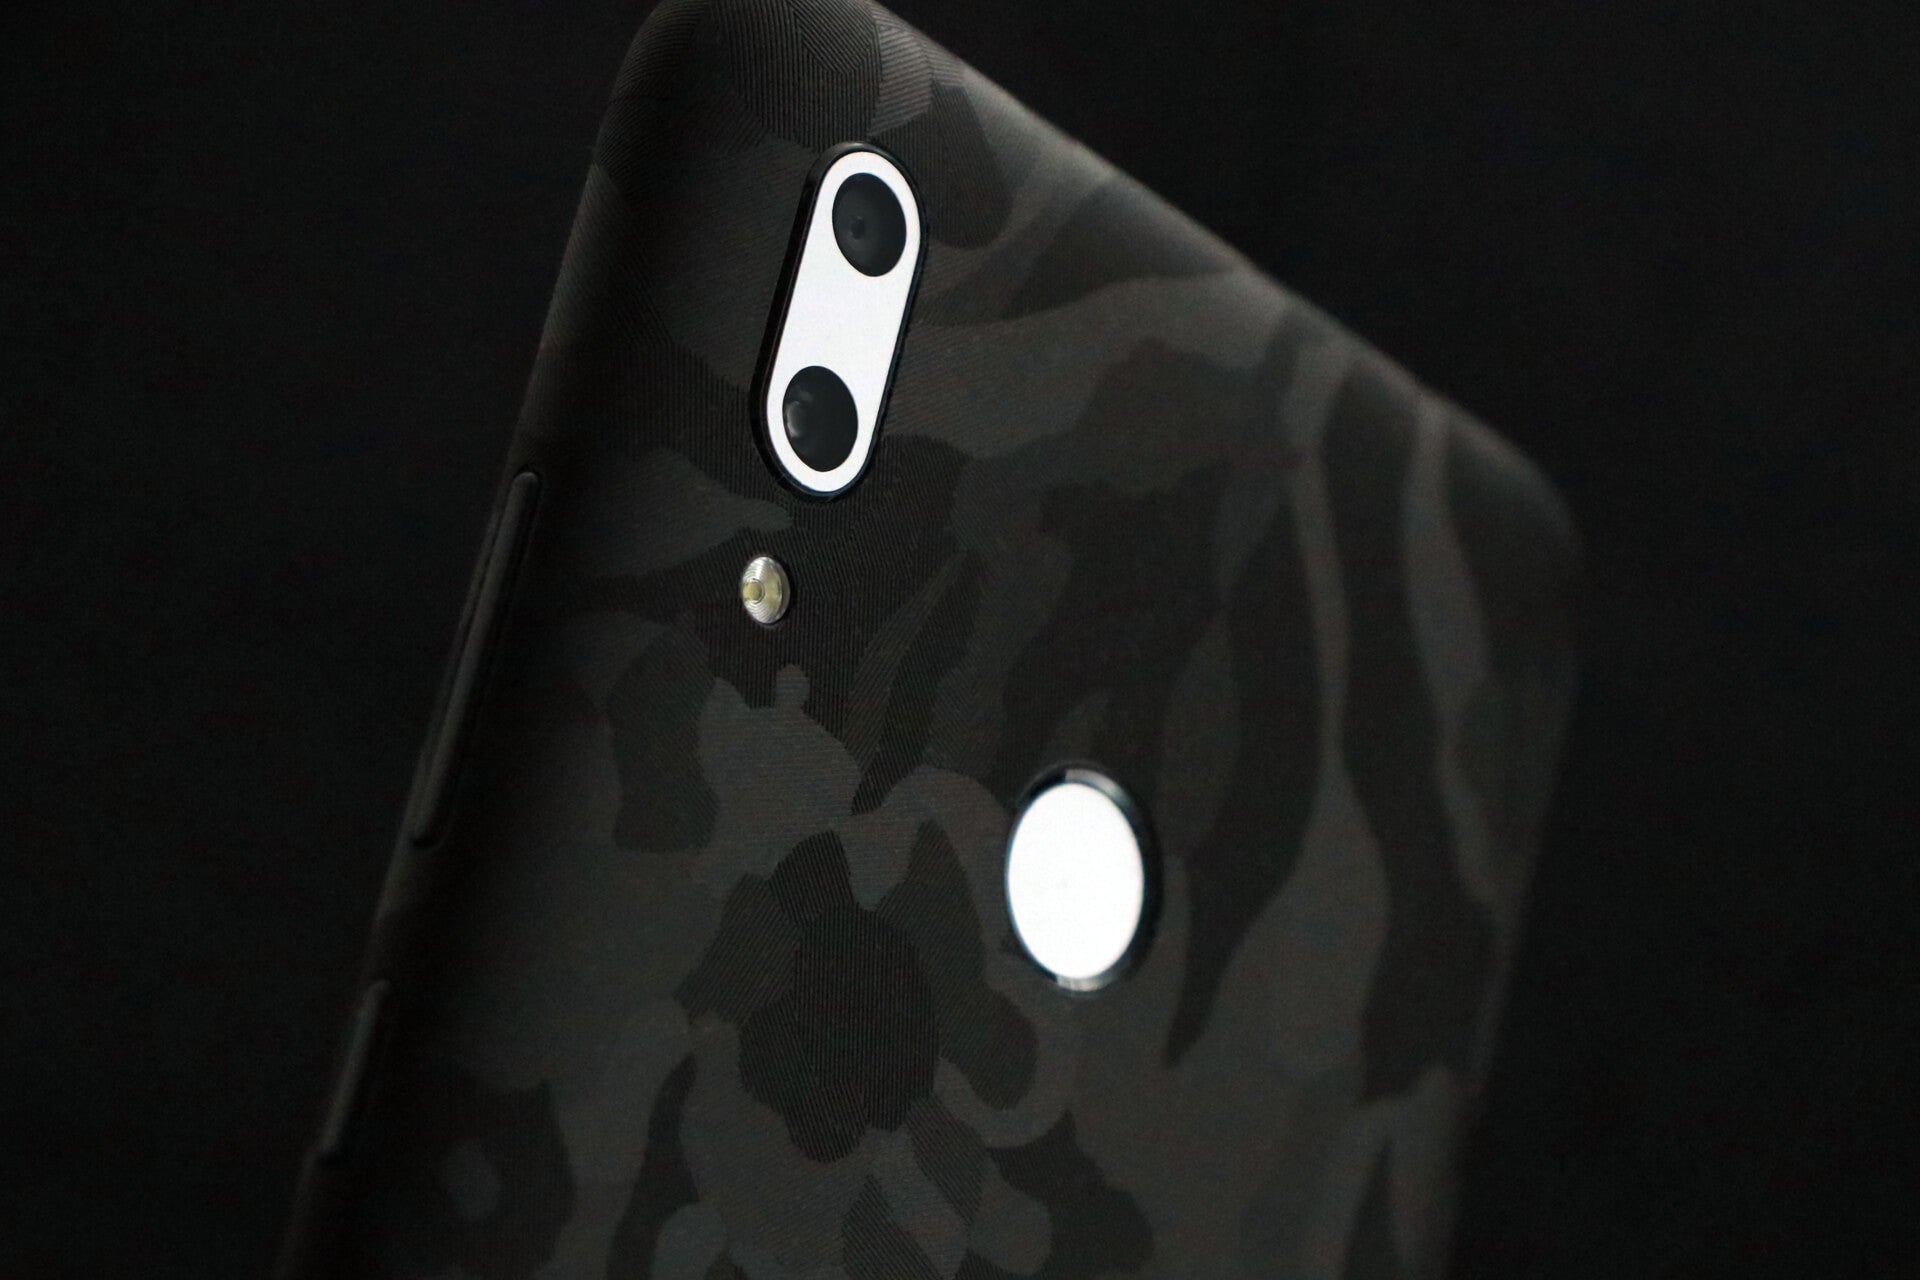 Huawei P Smart 2019 Black Camo Skins